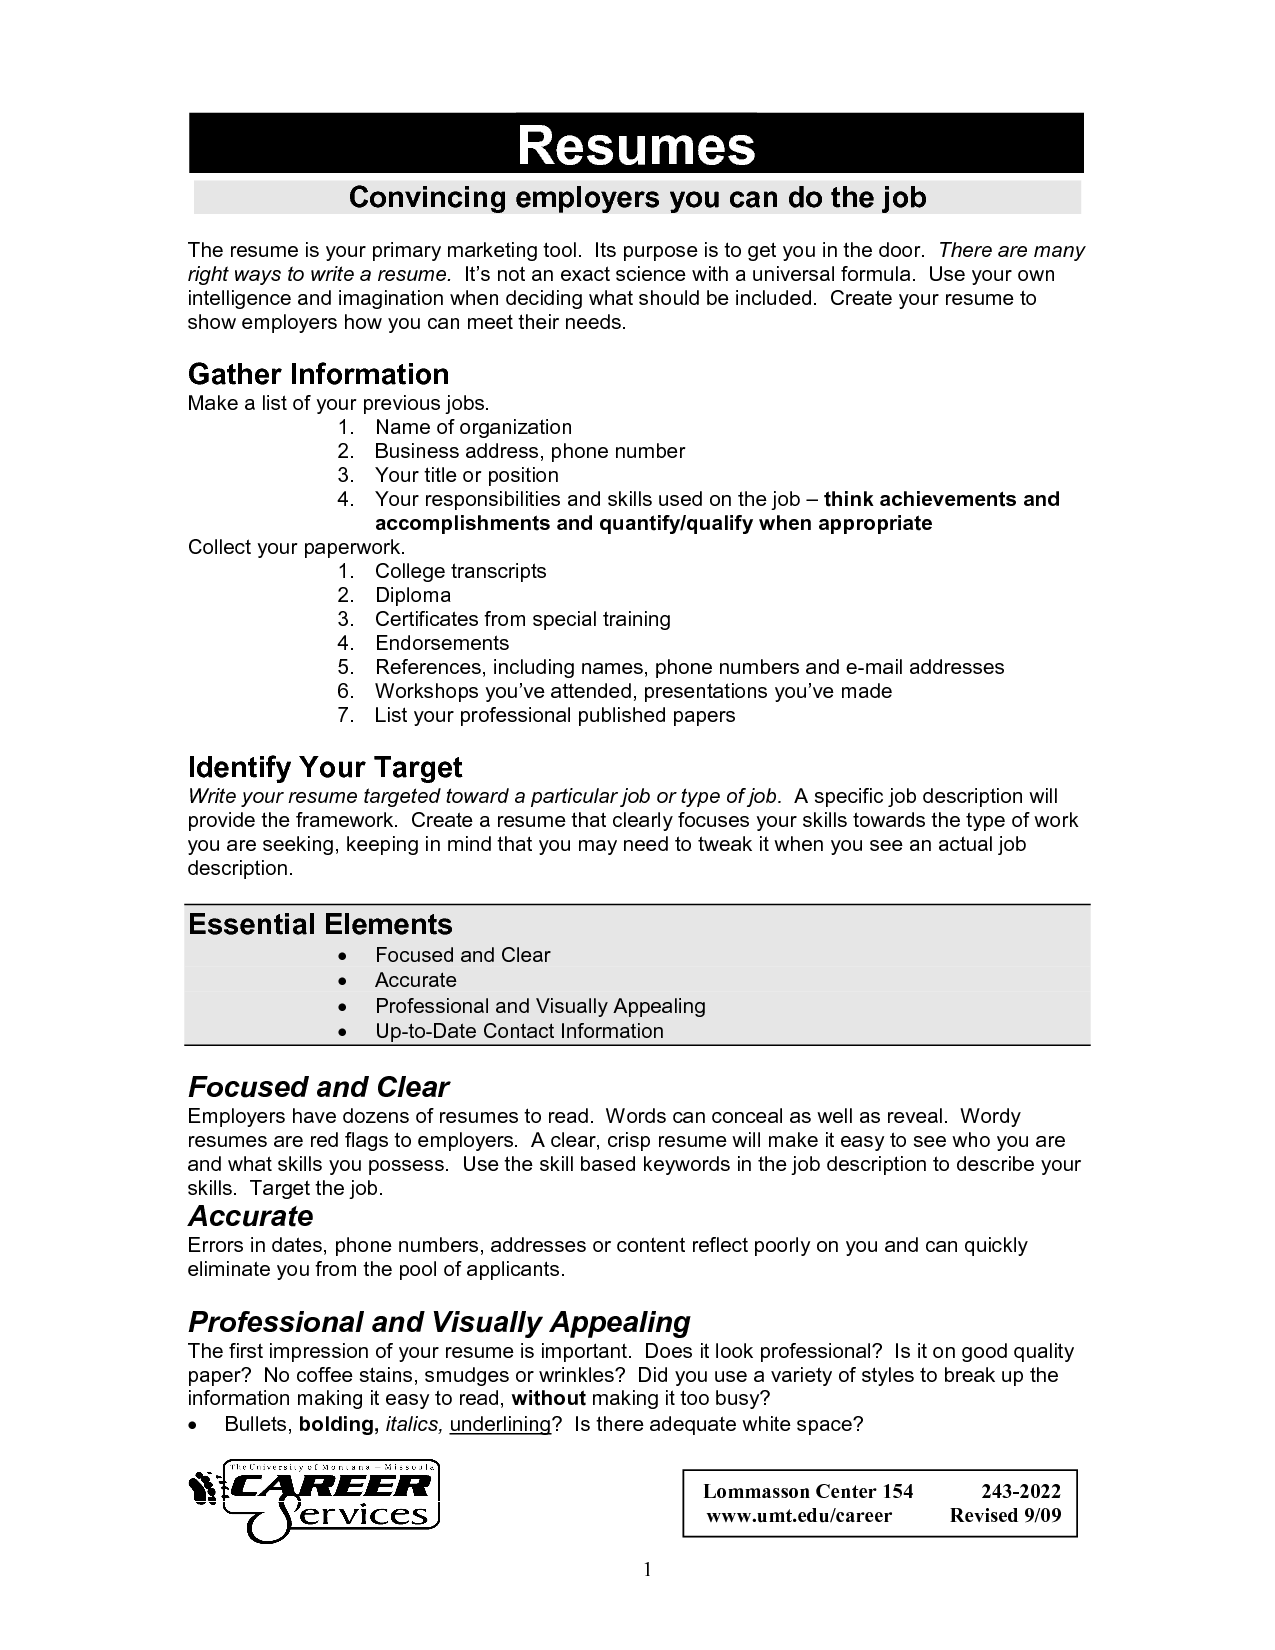 What Good Free Resume Builder Templates And Best Writing Software  Tips On Making A Resume